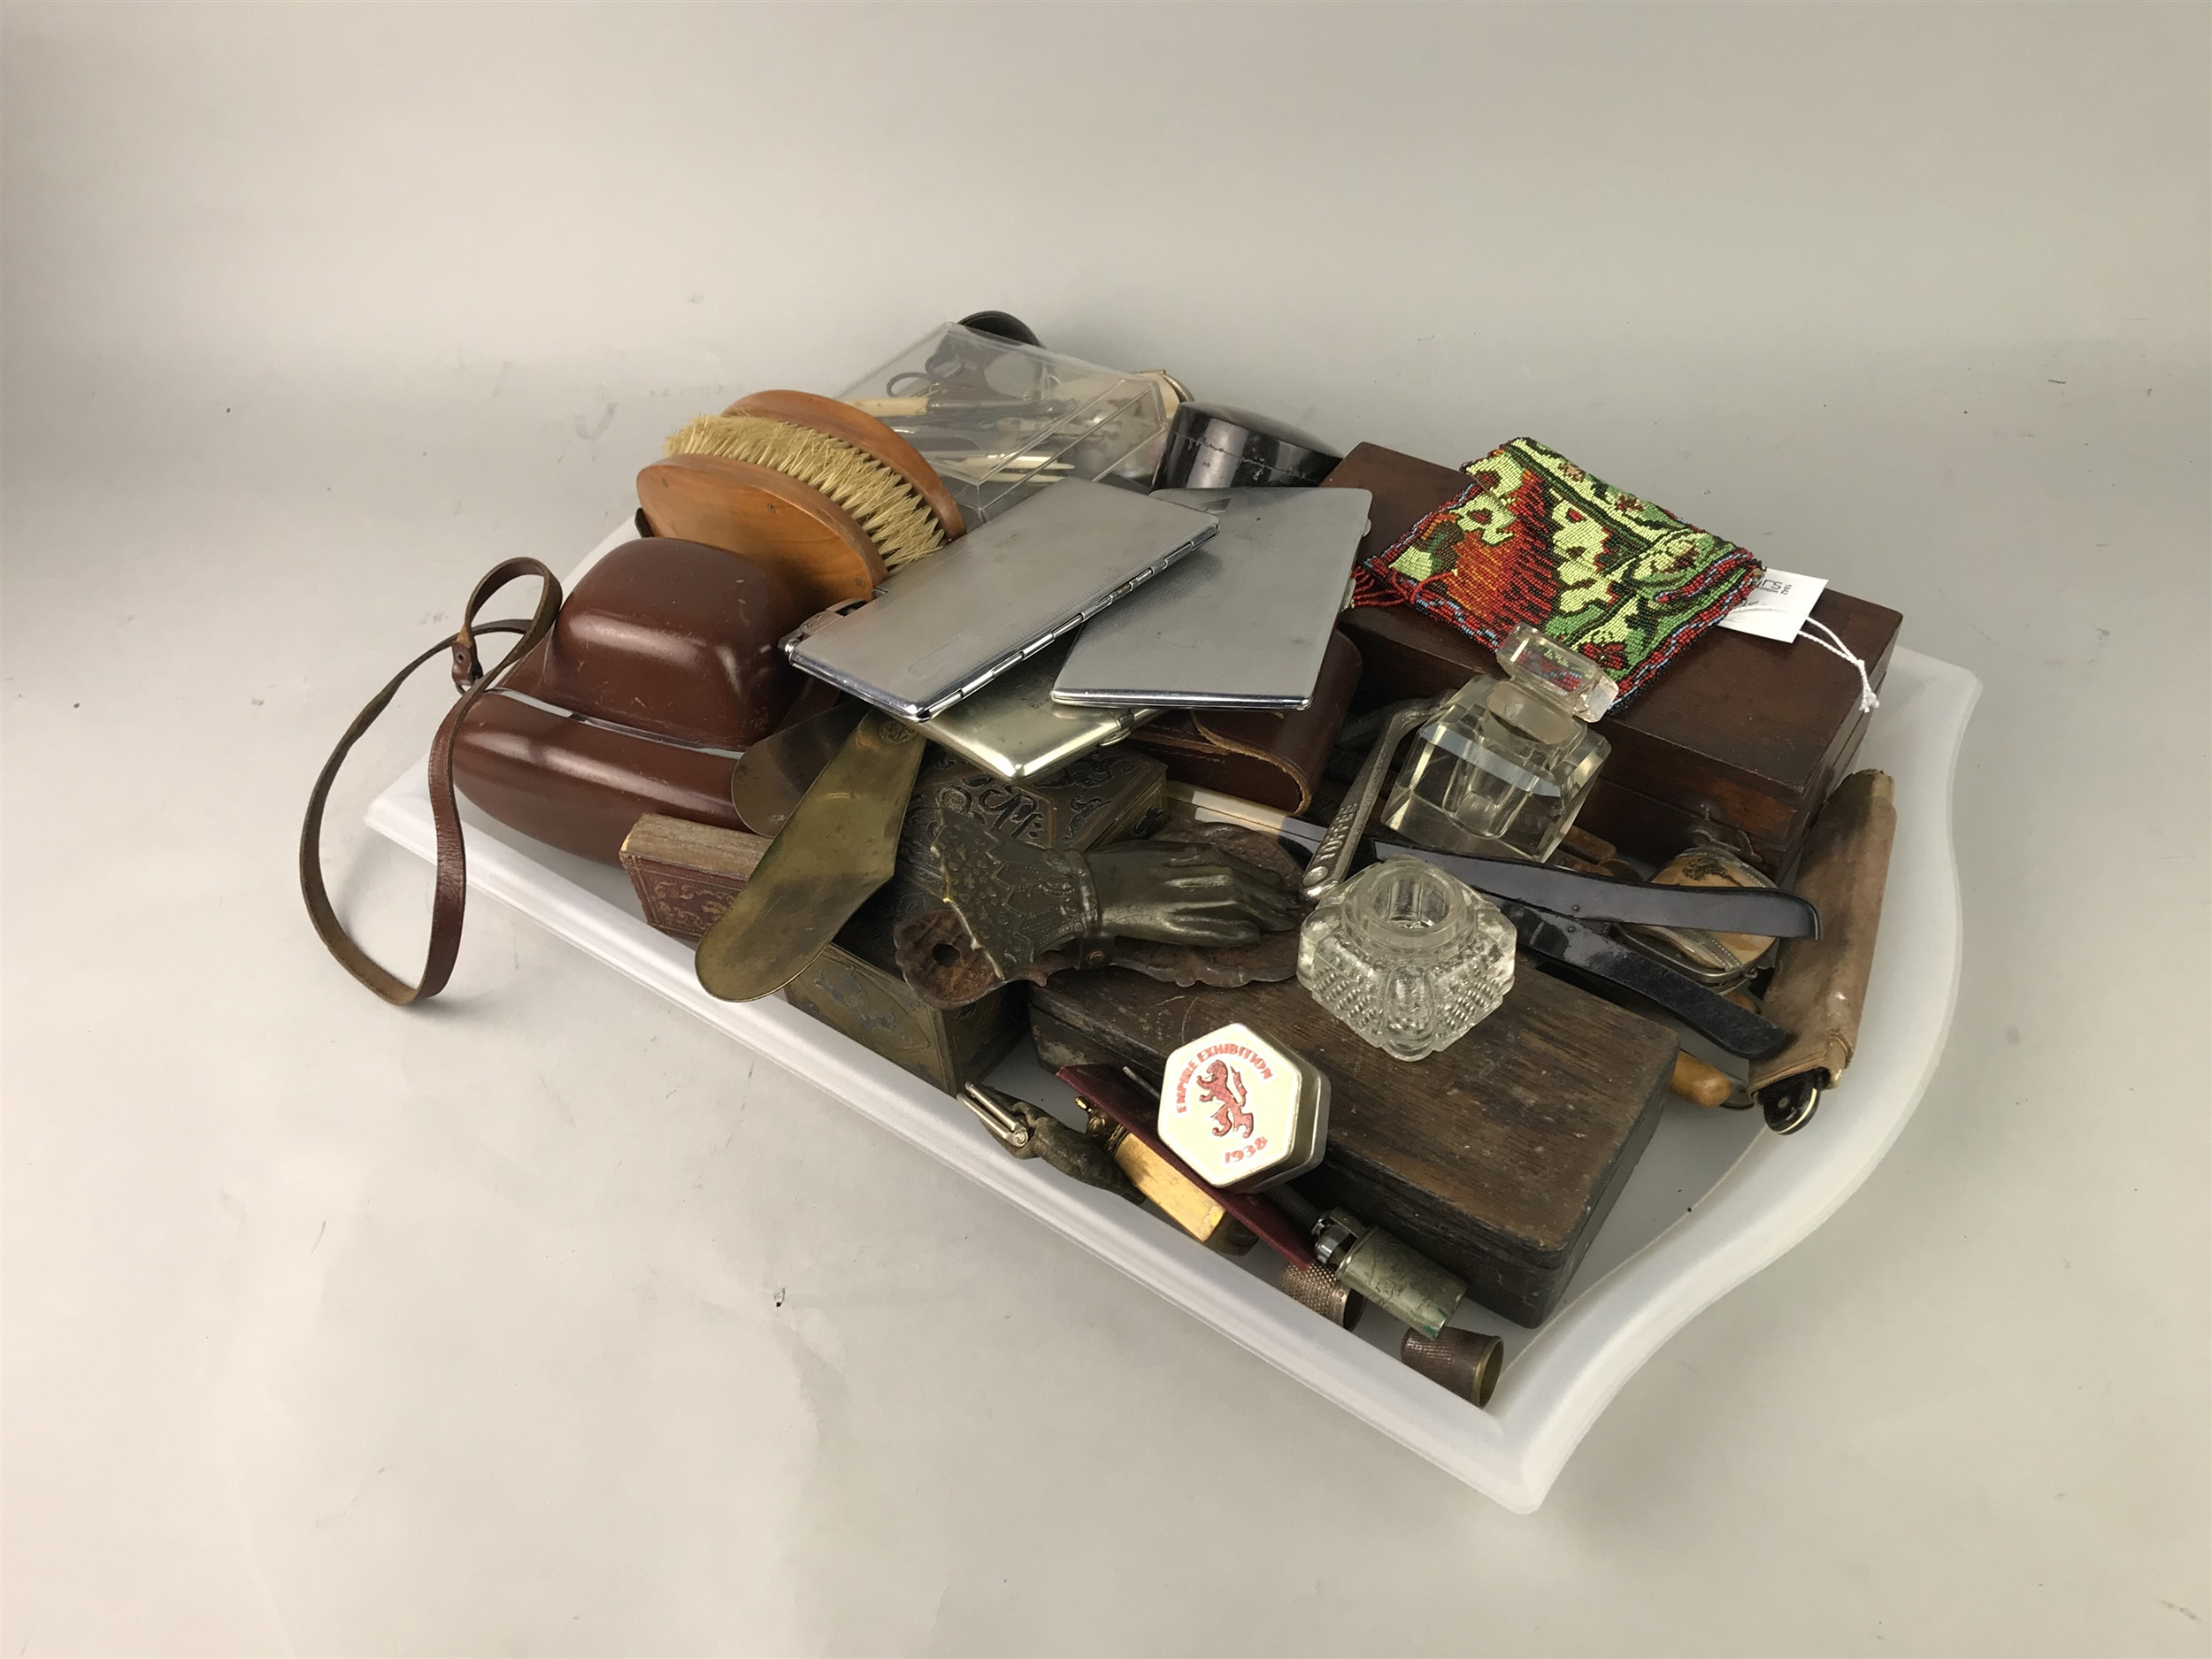 Lot 44 - A SYKES HYDROMETER, A CIGARETTE CASE AND OTHER VARIOUS ITEMS